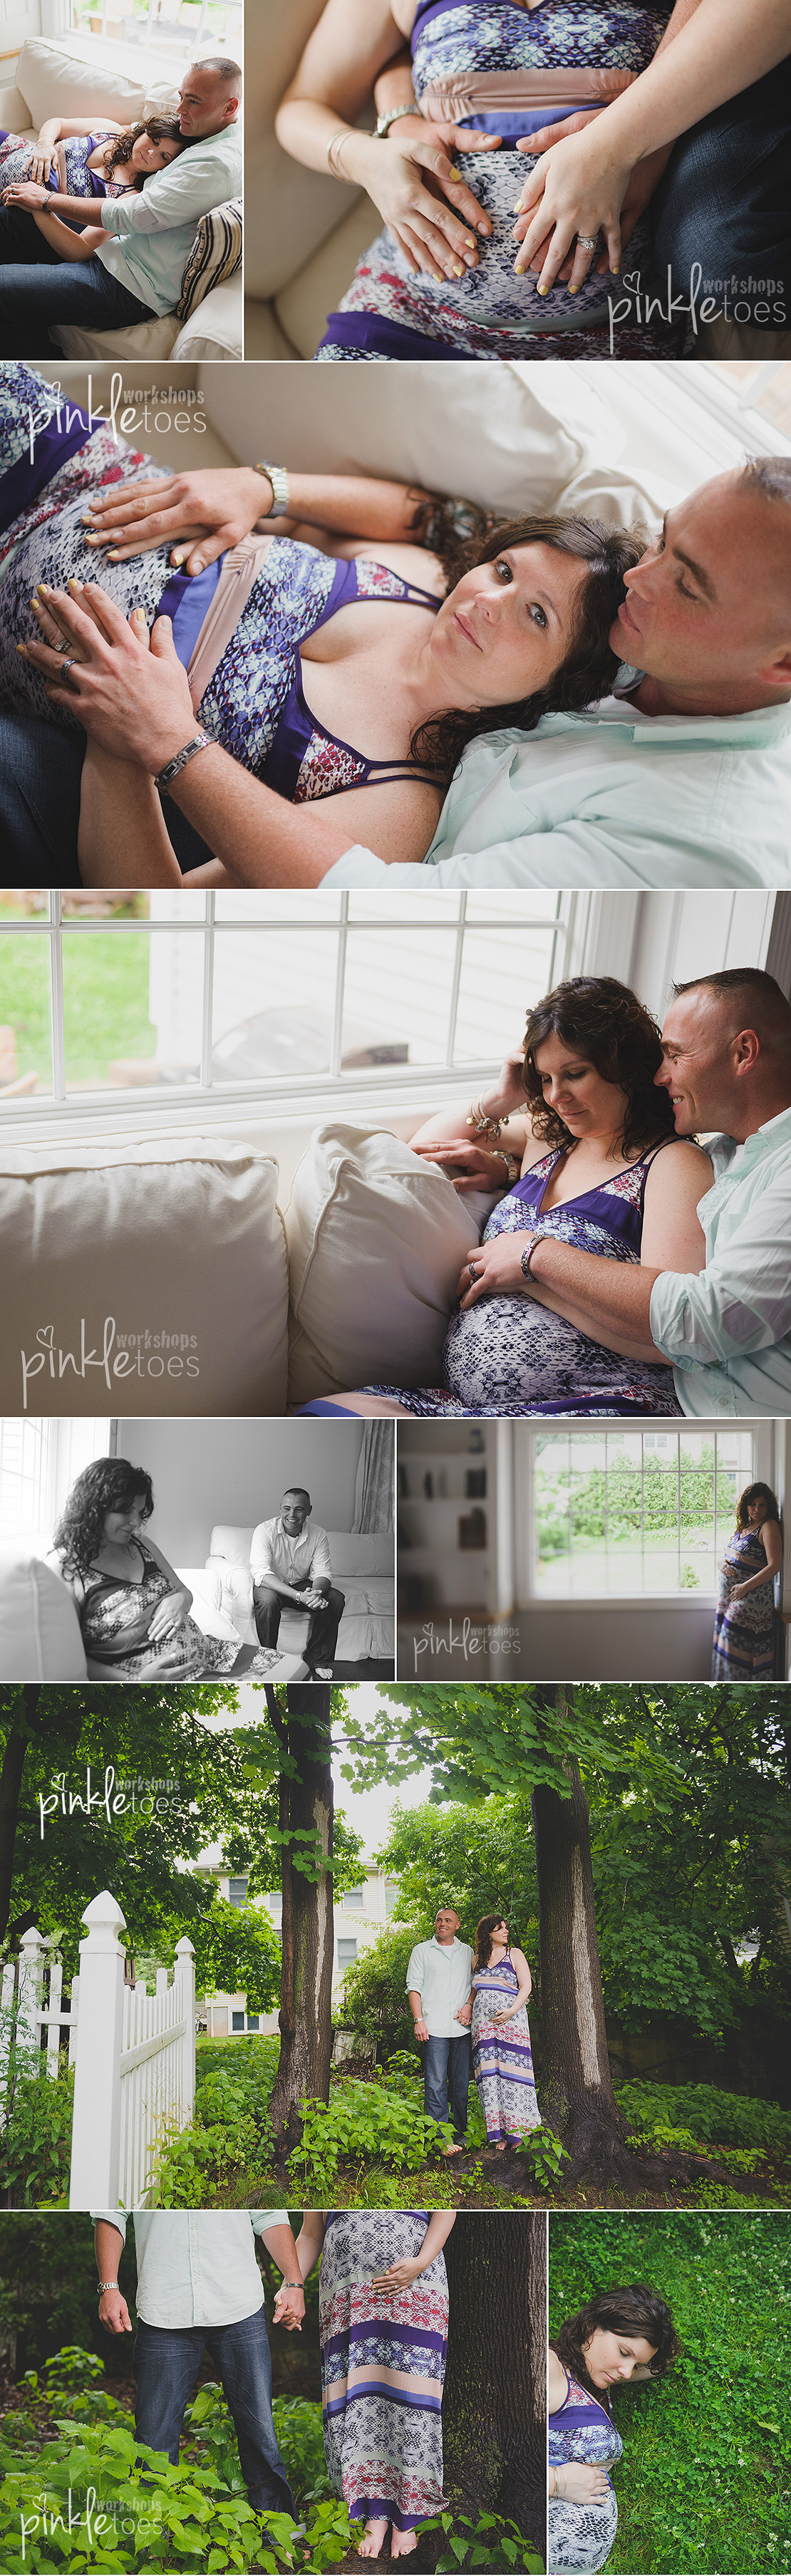 nj-maternity-pinkle-toes-texas-california-washington-lifestyle-photographer-workshop